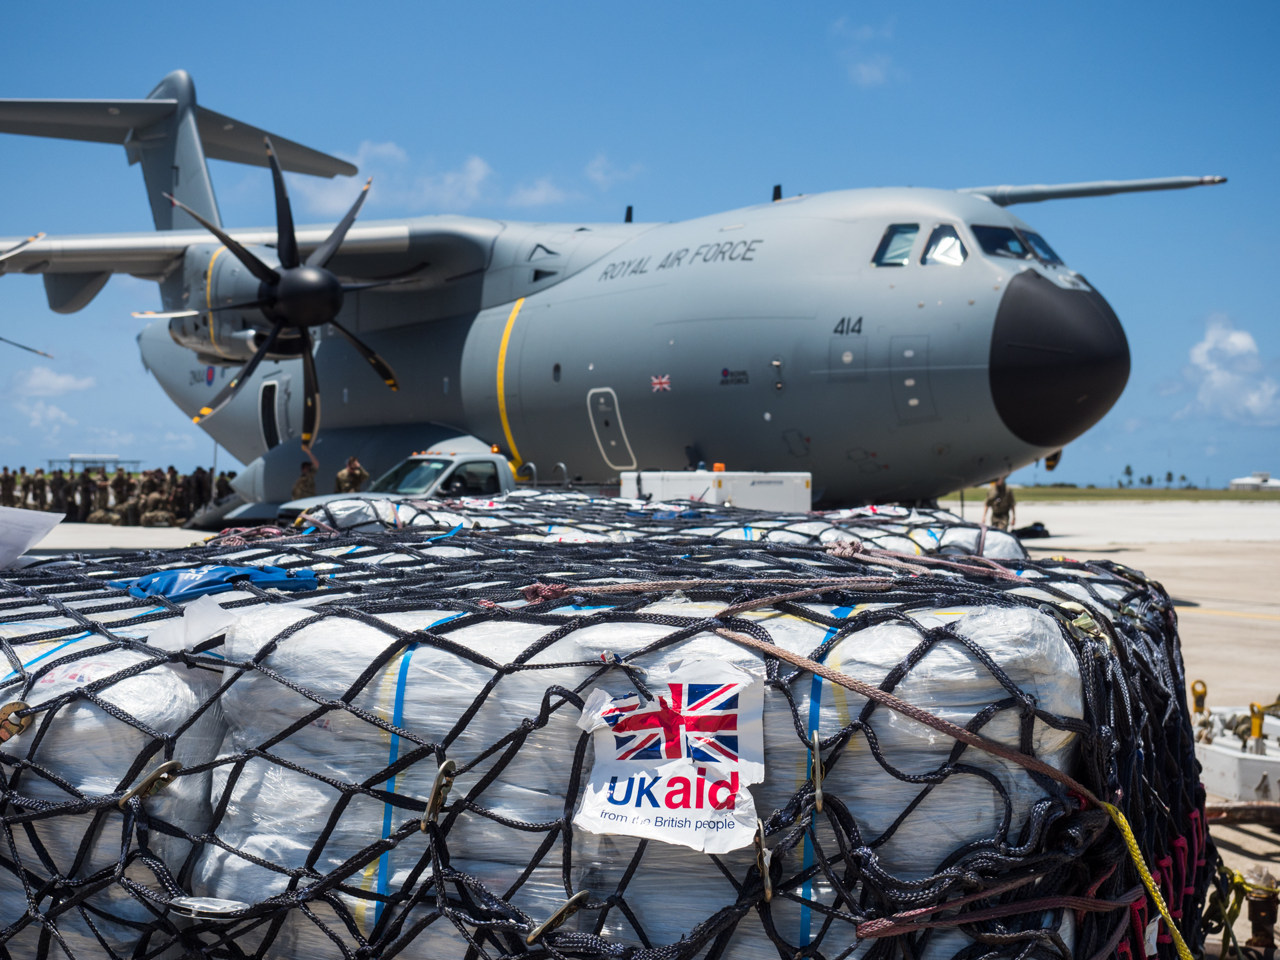 UK military passengers board an RAF A400M Atlas transport aircraft in Barbados on 9 September 2017, preparing to deliver UK aid to Caribbean islands stricken by Hurricane Irma.  Royal Air Force logisticians from RAF Brize Norton have assisted with the delivery of military personnel and aid cargo to the Caribbean to support disaster relief in the wake of Hurricane IRMA. RAF aircraft - including C-17, A400M and Voyager aircraft - are supporting a joint task force of RAF, Royal Marines, Army and Royal Navy personnel who are supporting the Department for International Development as it delivers aid to stricken Caribbean islands.